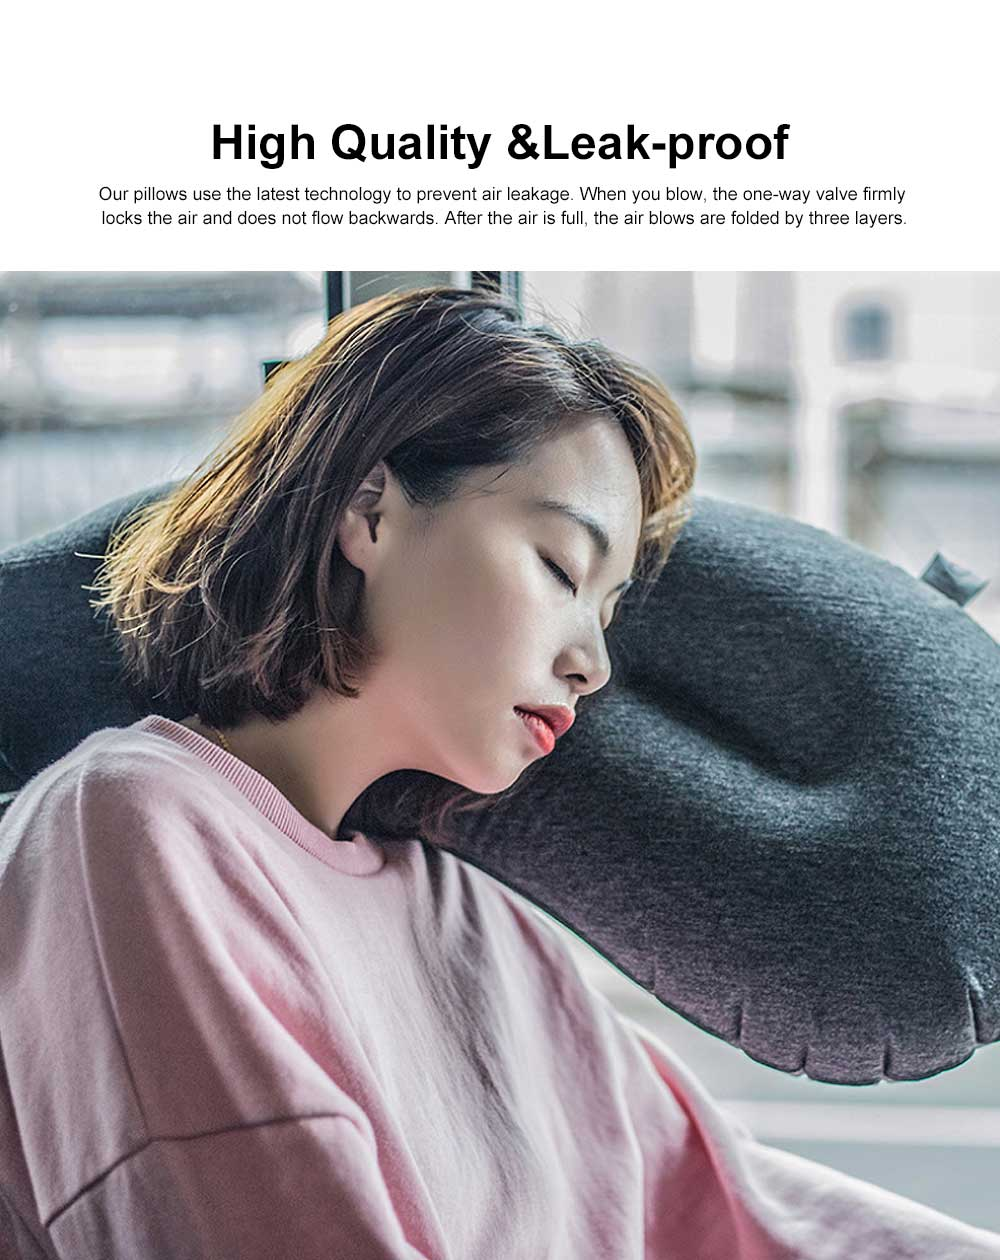 Eggplant Inflatable Pillow, Blowing Creative Lightweight Portable Headrest, Camp Pillow for Outdoor Travel Airplane Camping Beach 1